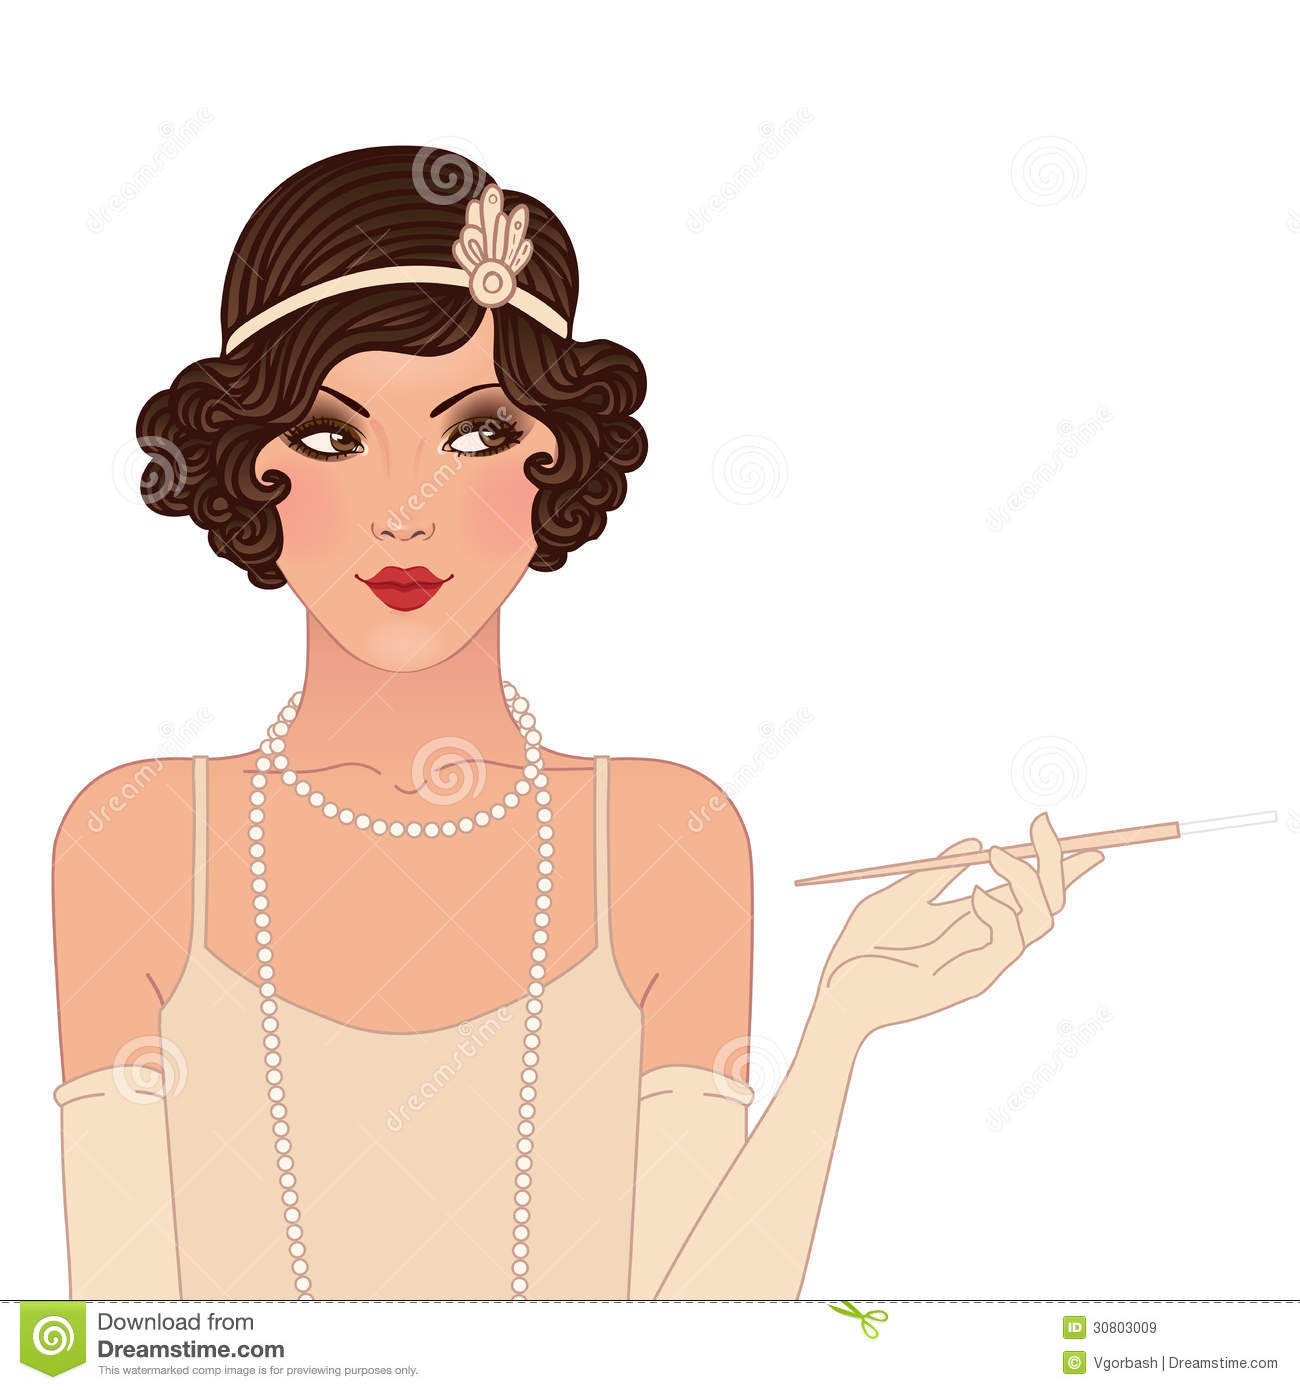 Flapper girls set: young beautiful woman of 1920s. Vintage style